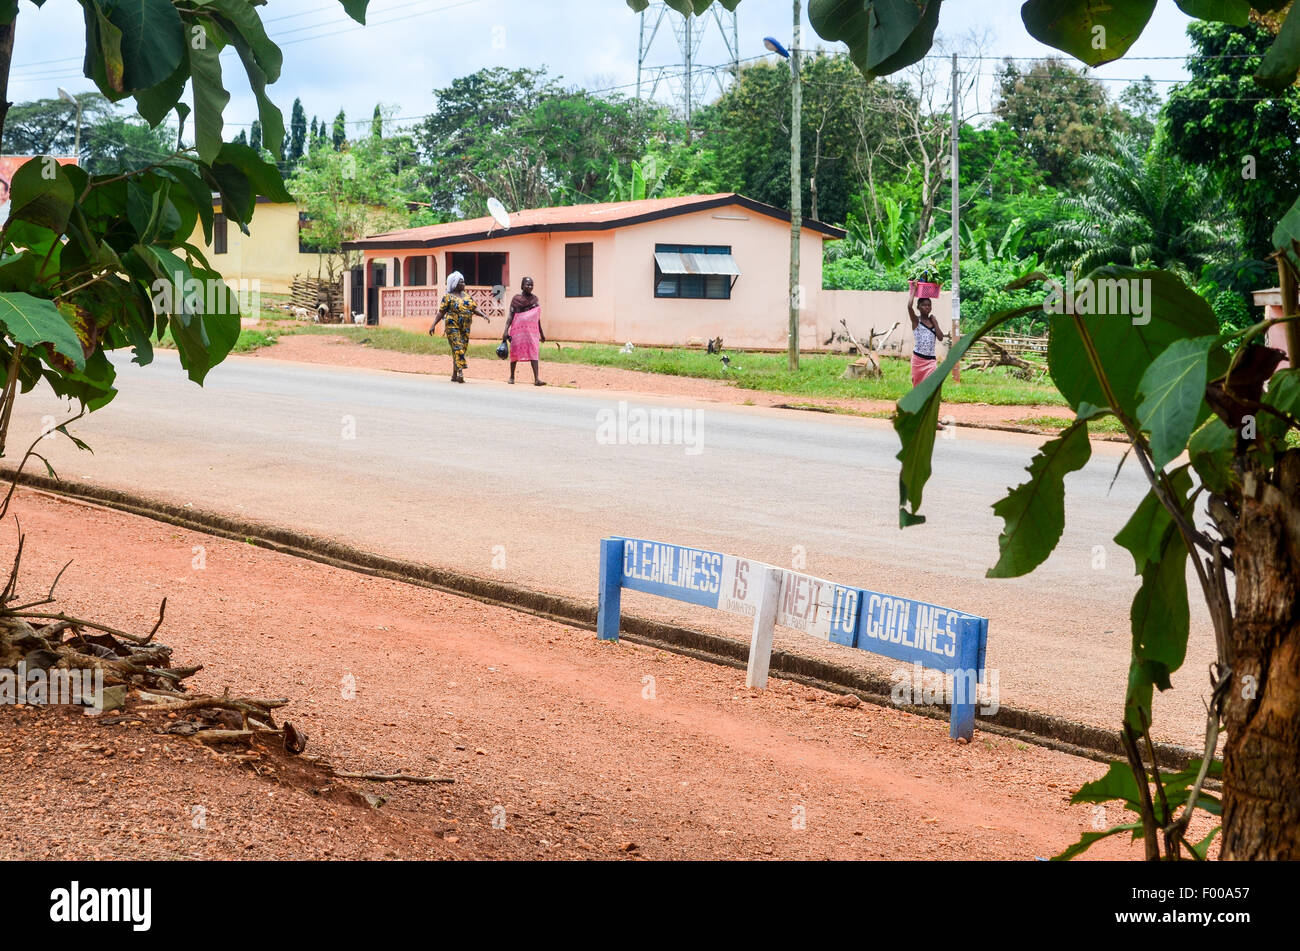 'Cleanliness is next to Godliness' sign about public cleanliness in Ghana - Stock Image